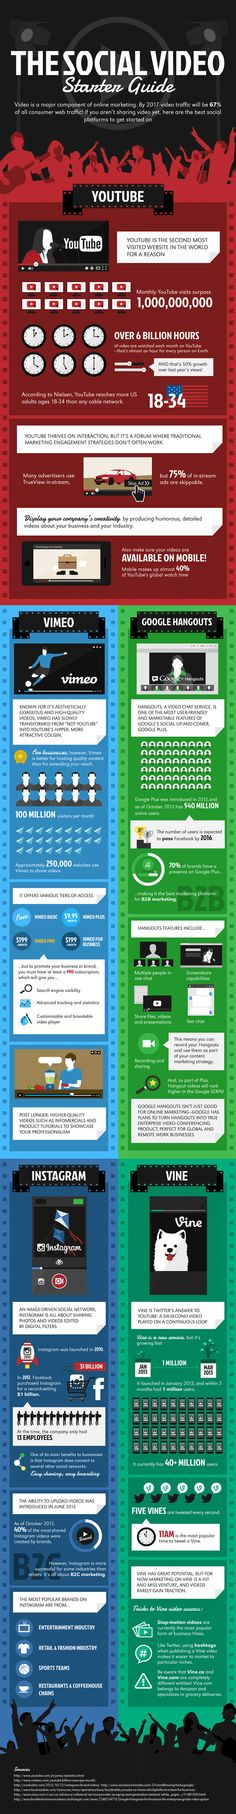 How to Create and Share Social Videos [Infographic] If you just want to see the Infographic, this is the one to view.